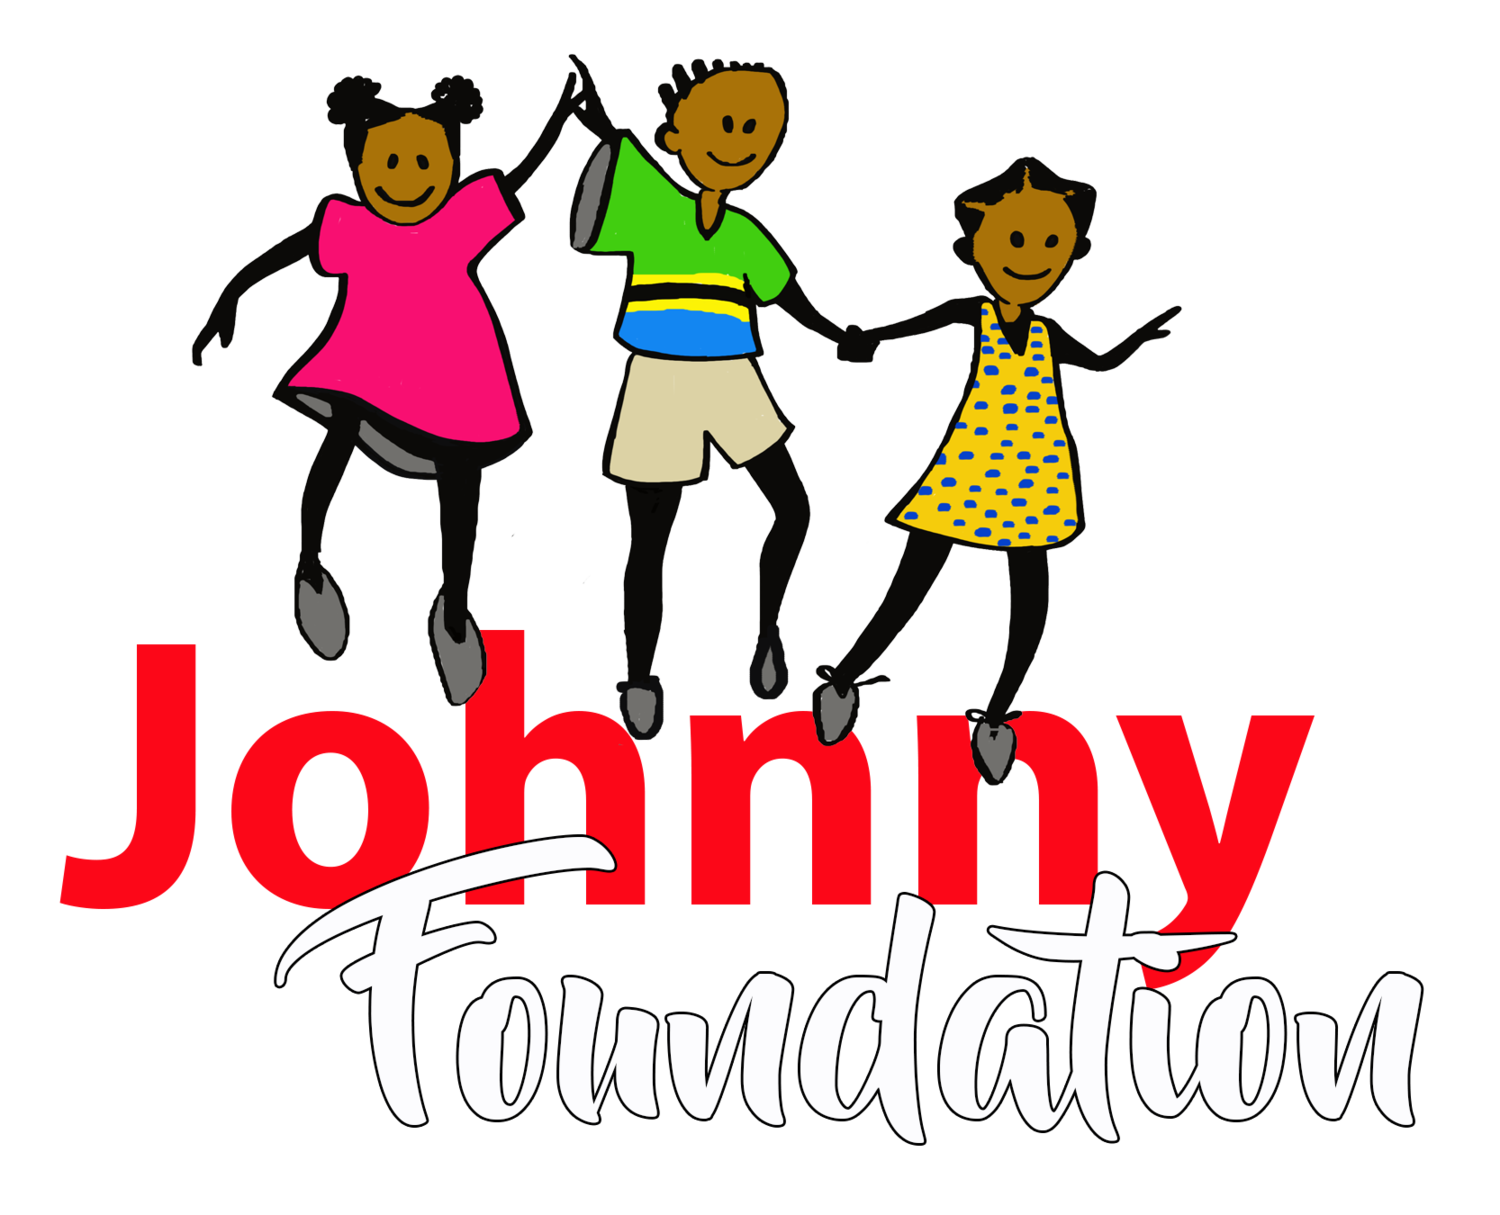 Johnny Foundation